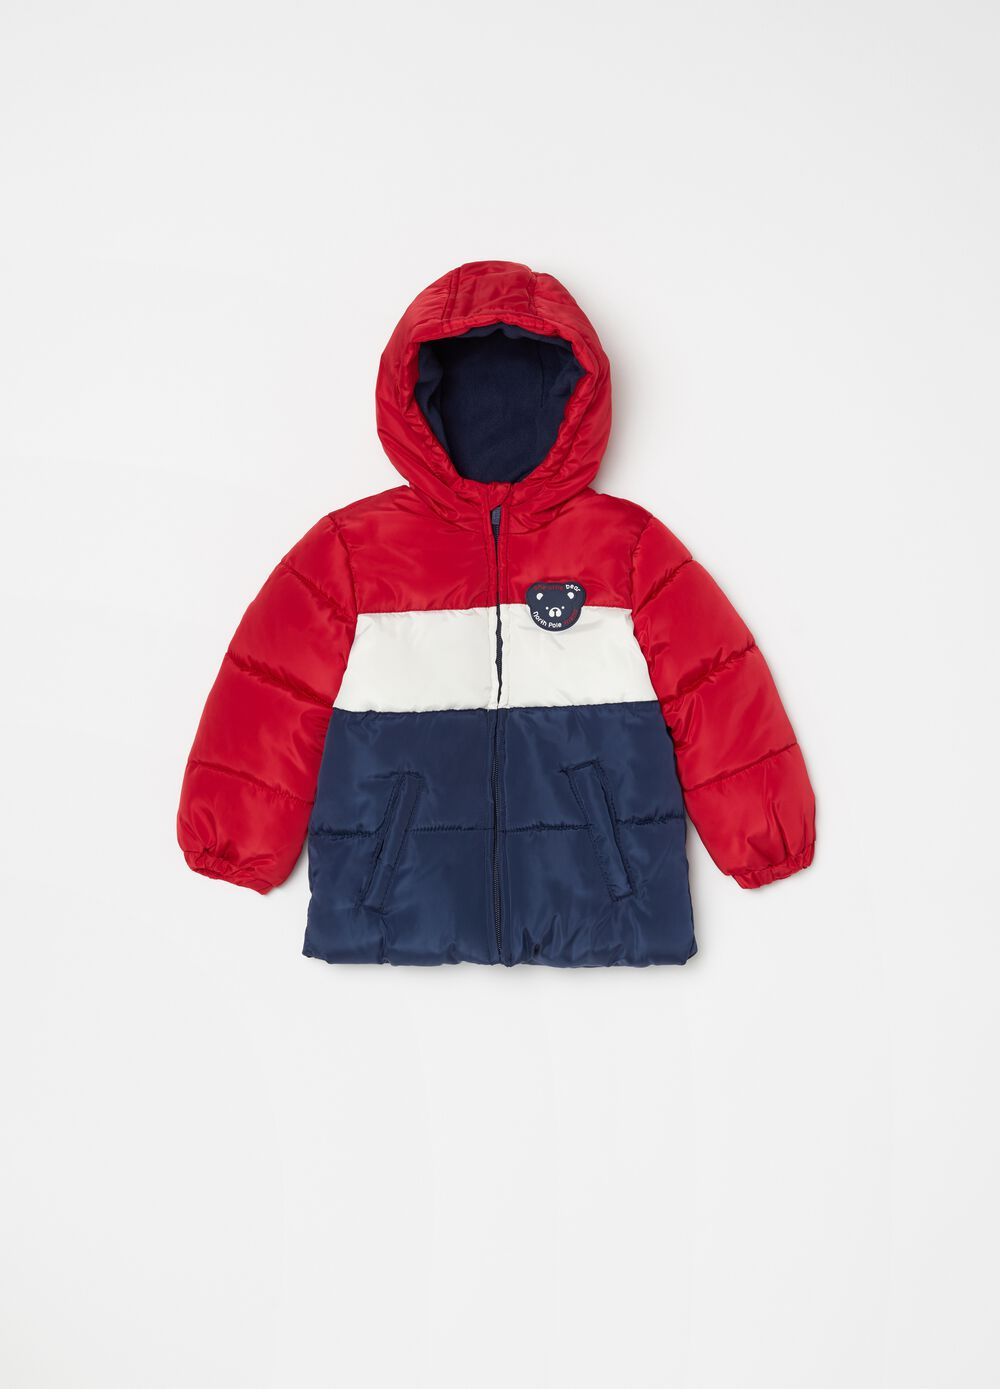 Padded and quilted jacket with patch.